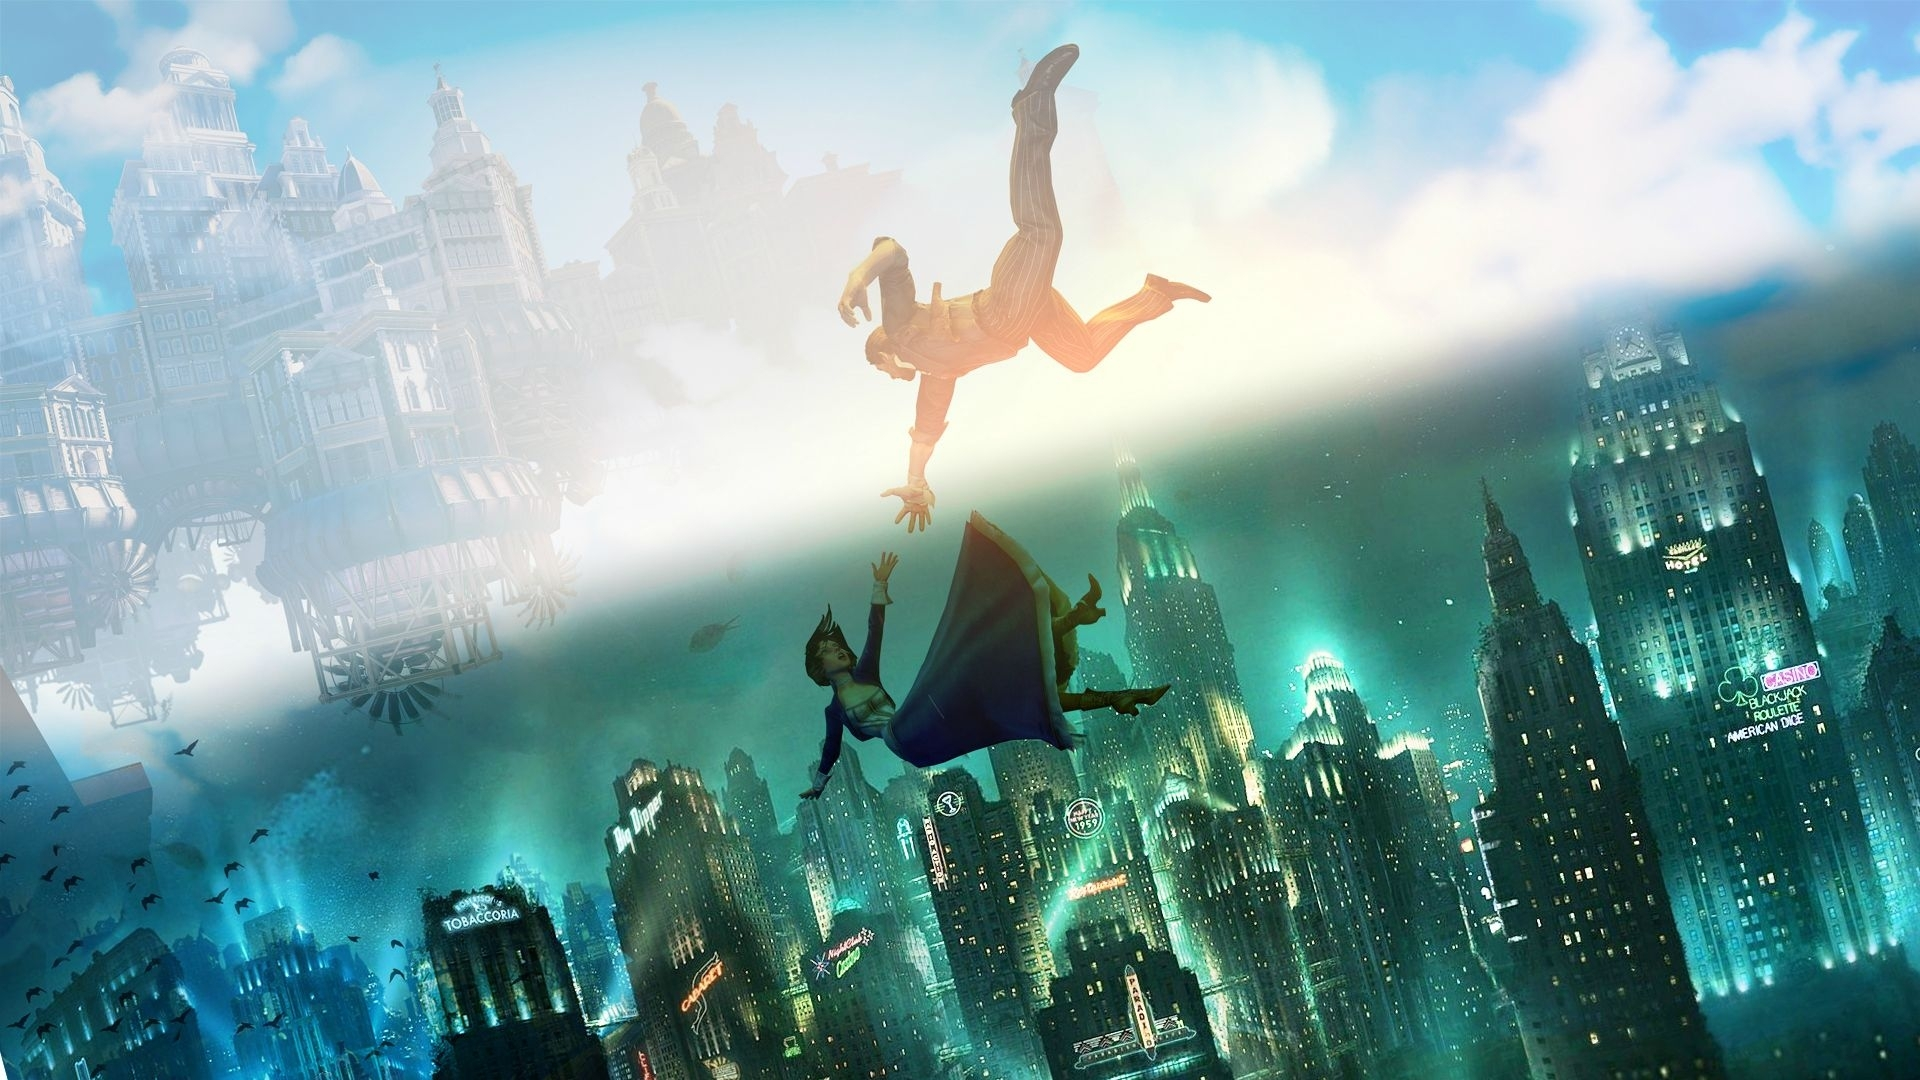 185 bioshock infinite fonds d'écran hd | arrière-plans - wallpaper abyss